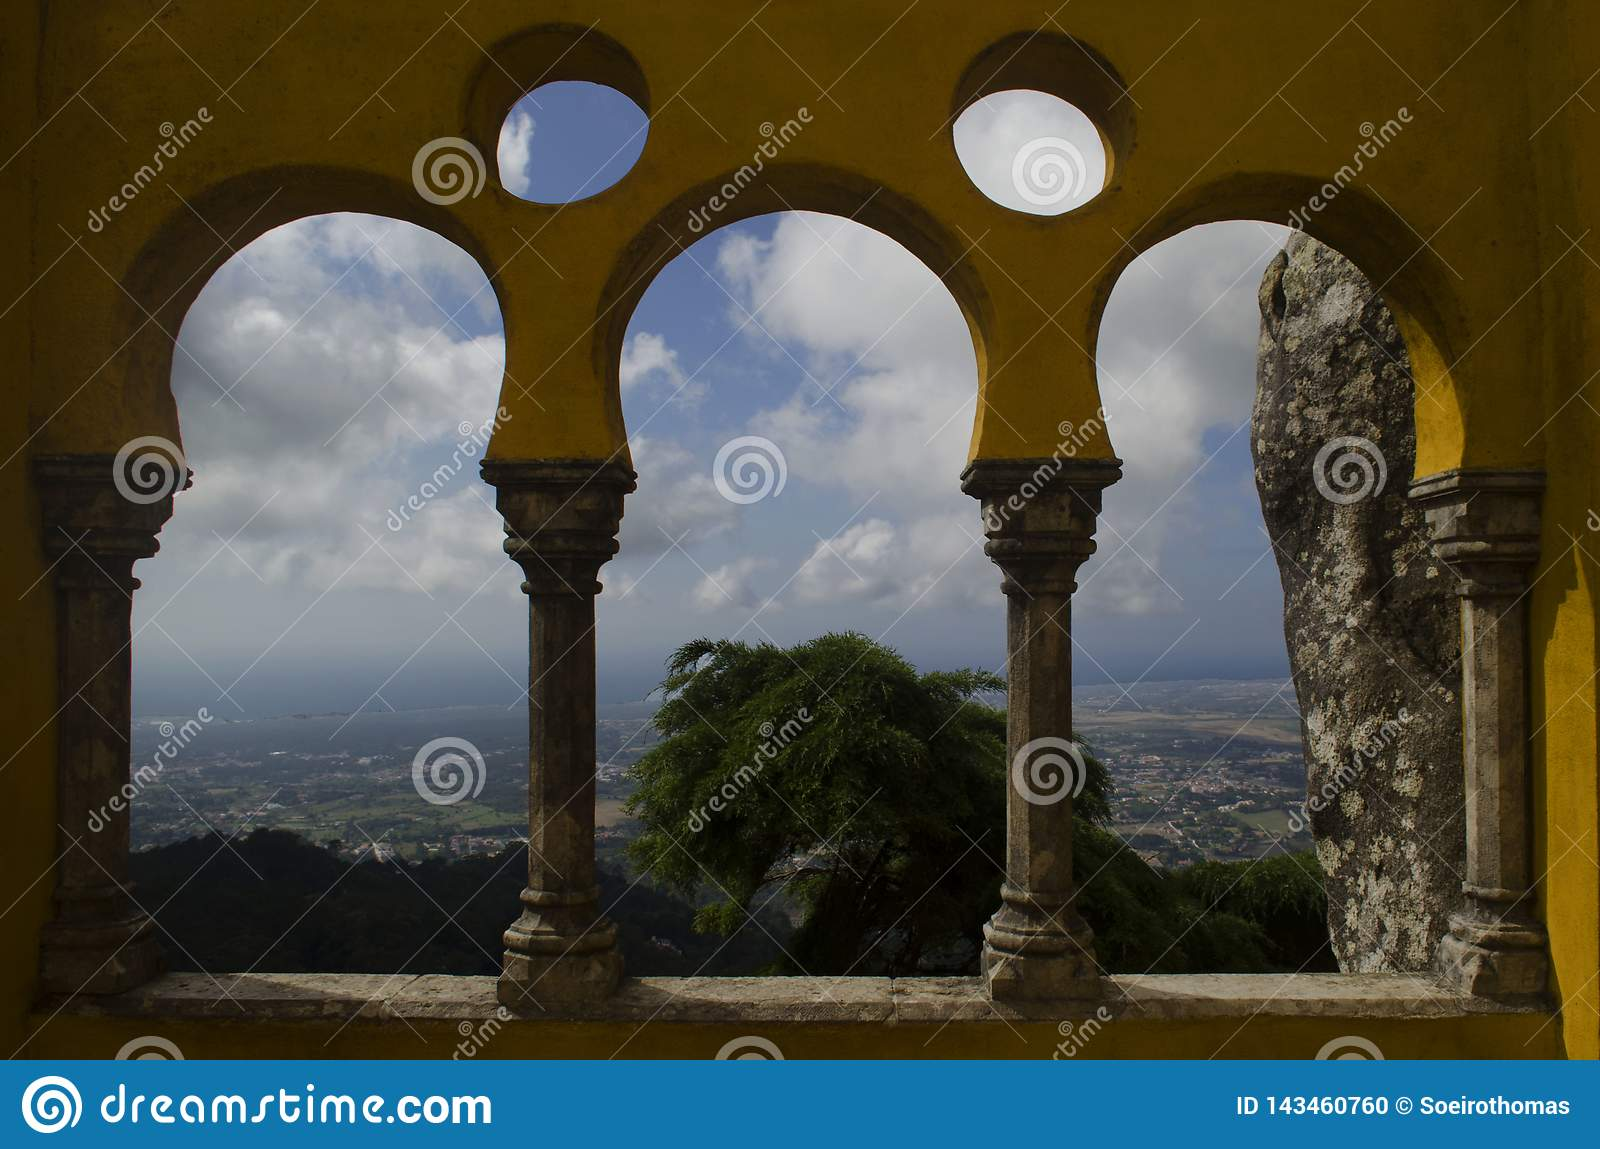 Arches of Pena castle architecture with nature and historic city of sintra